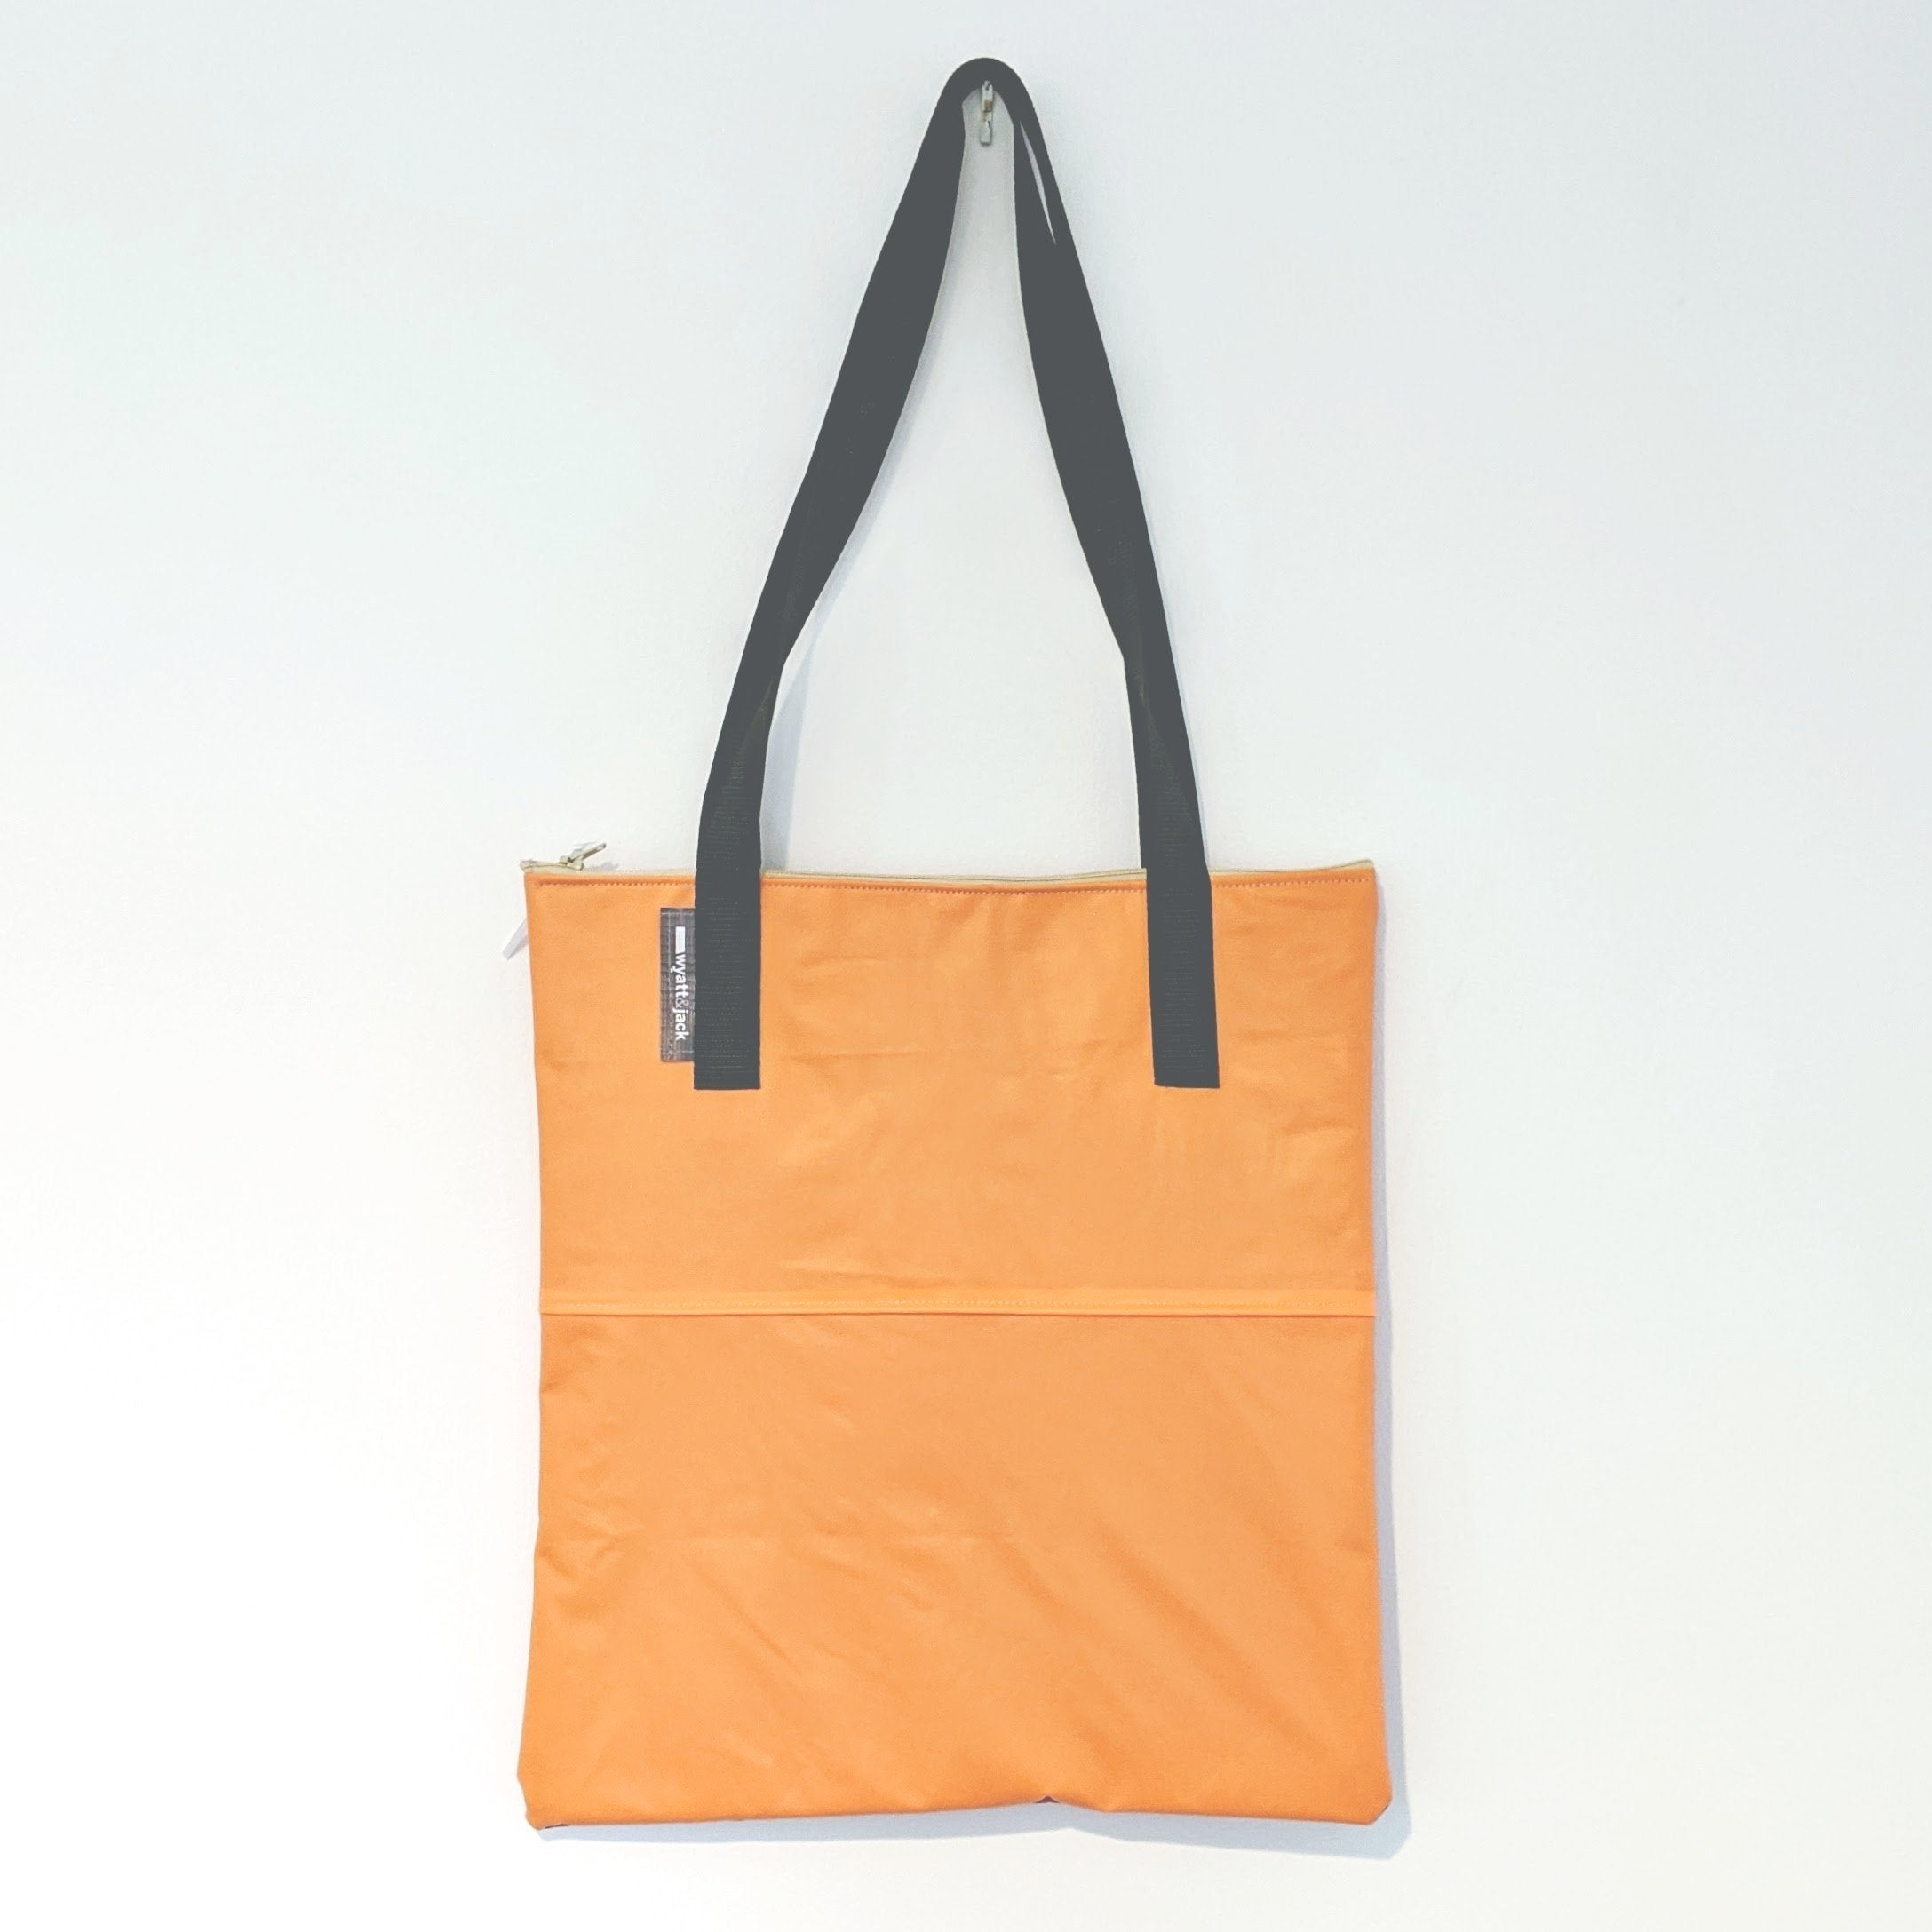 Wyatt & Jack bouncy castle tote bag (various colours)